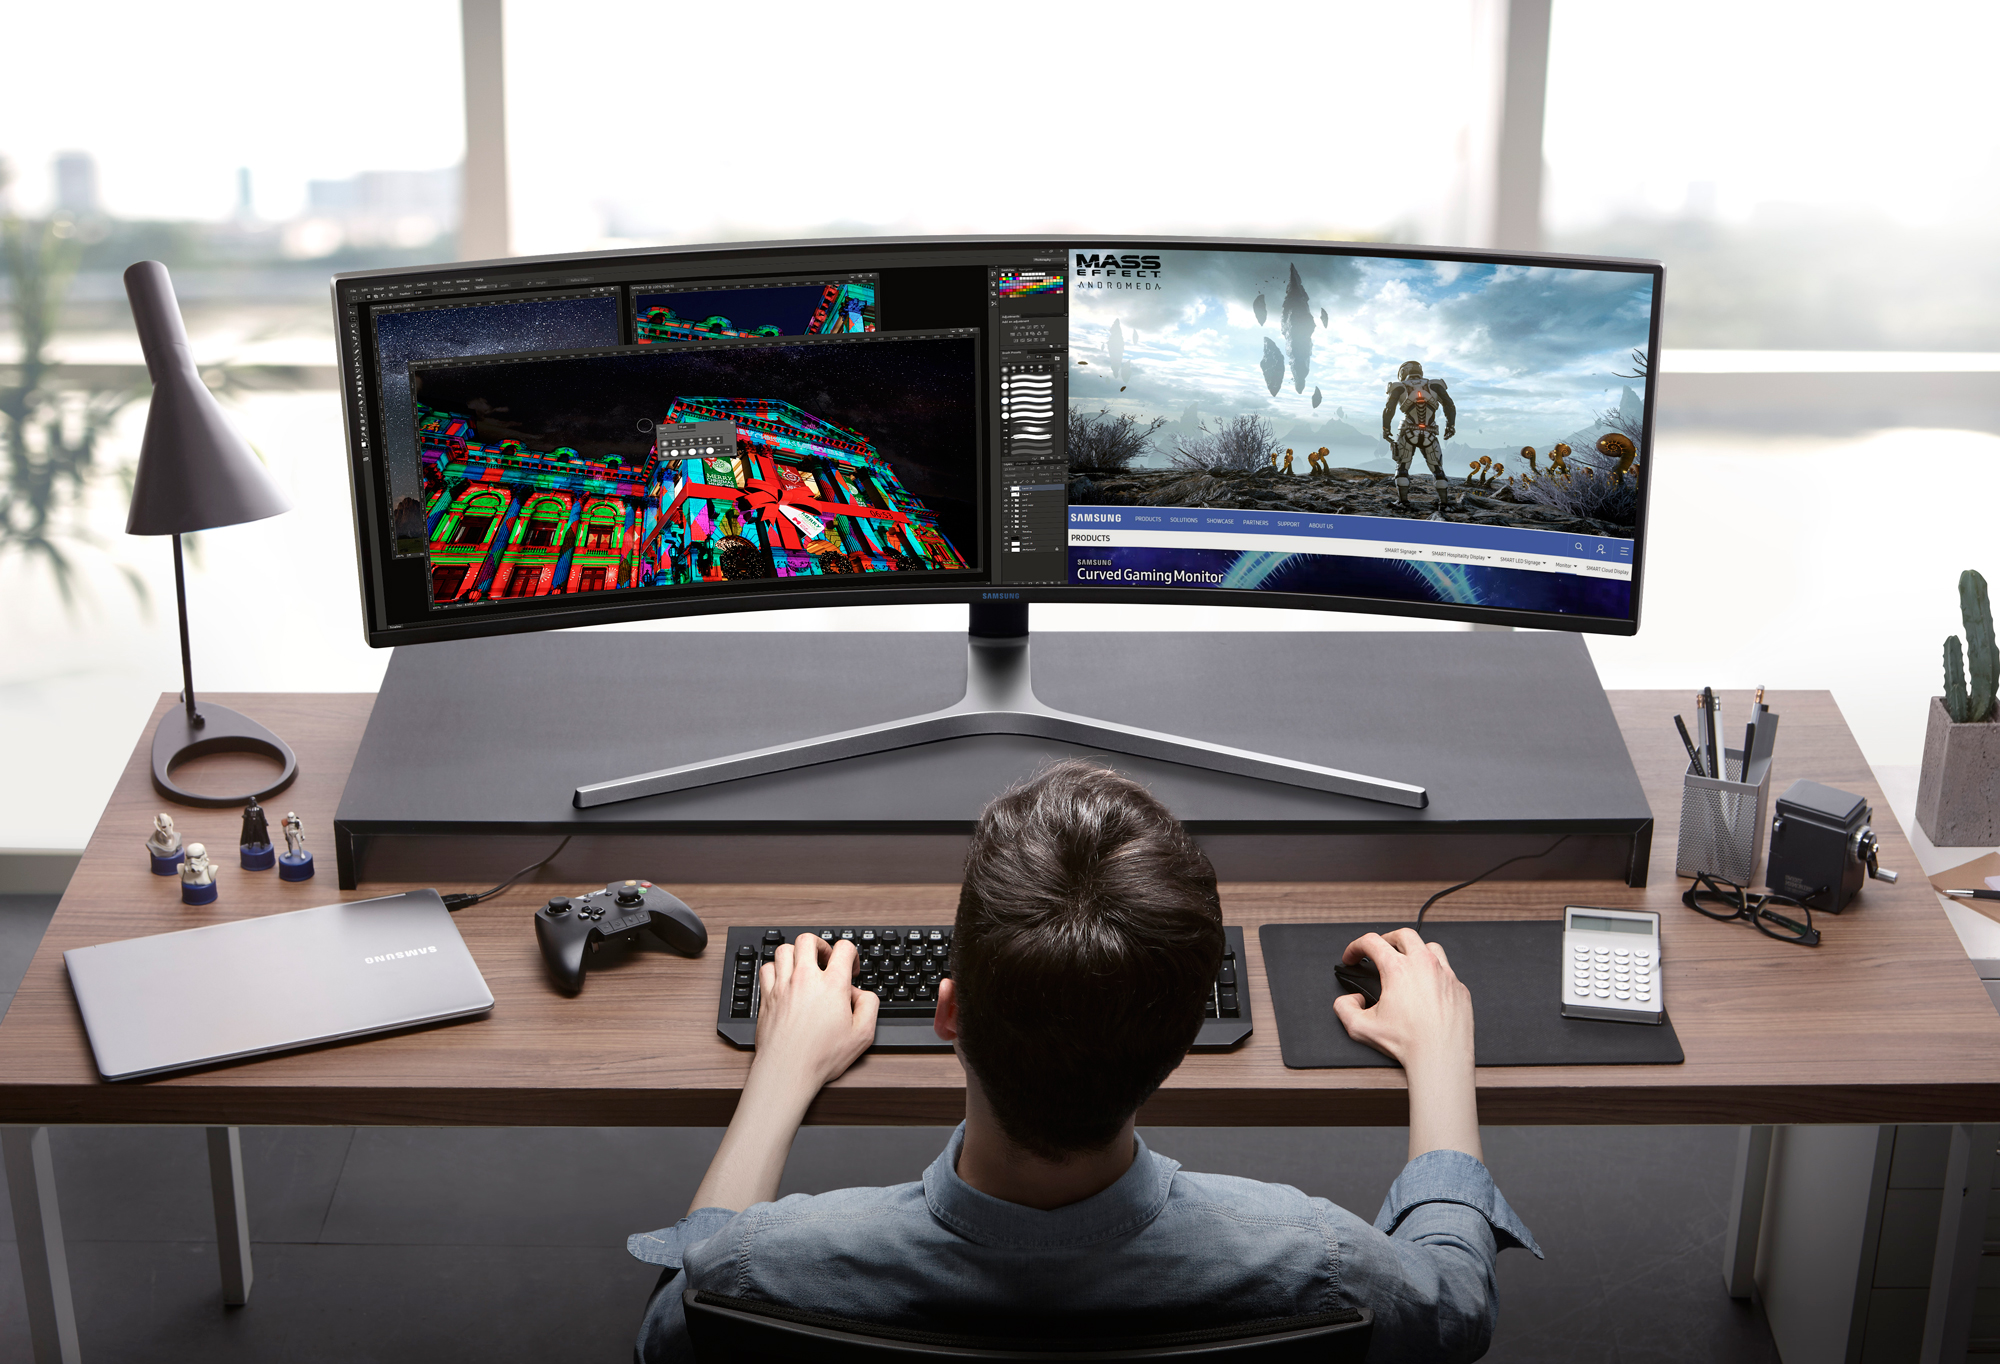 Samsung Ultrawide C49HG90 Gaming Monitor